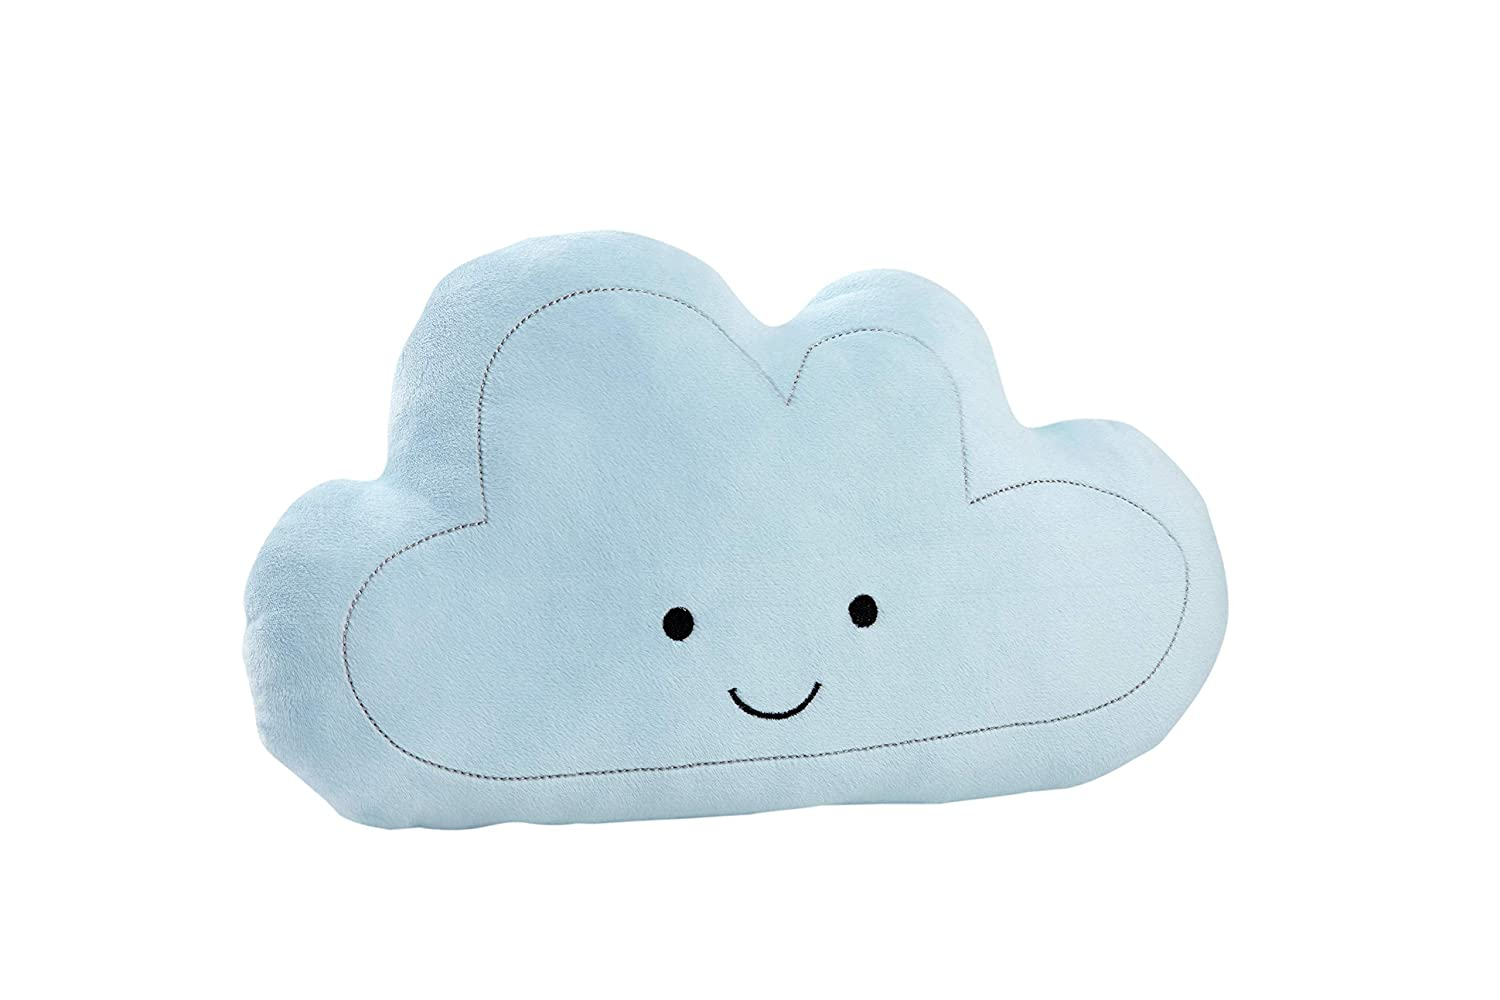 Little Love by NoJo - Plush El Paso Mall Cloud High quality Shaped Decorative Pillow Happy